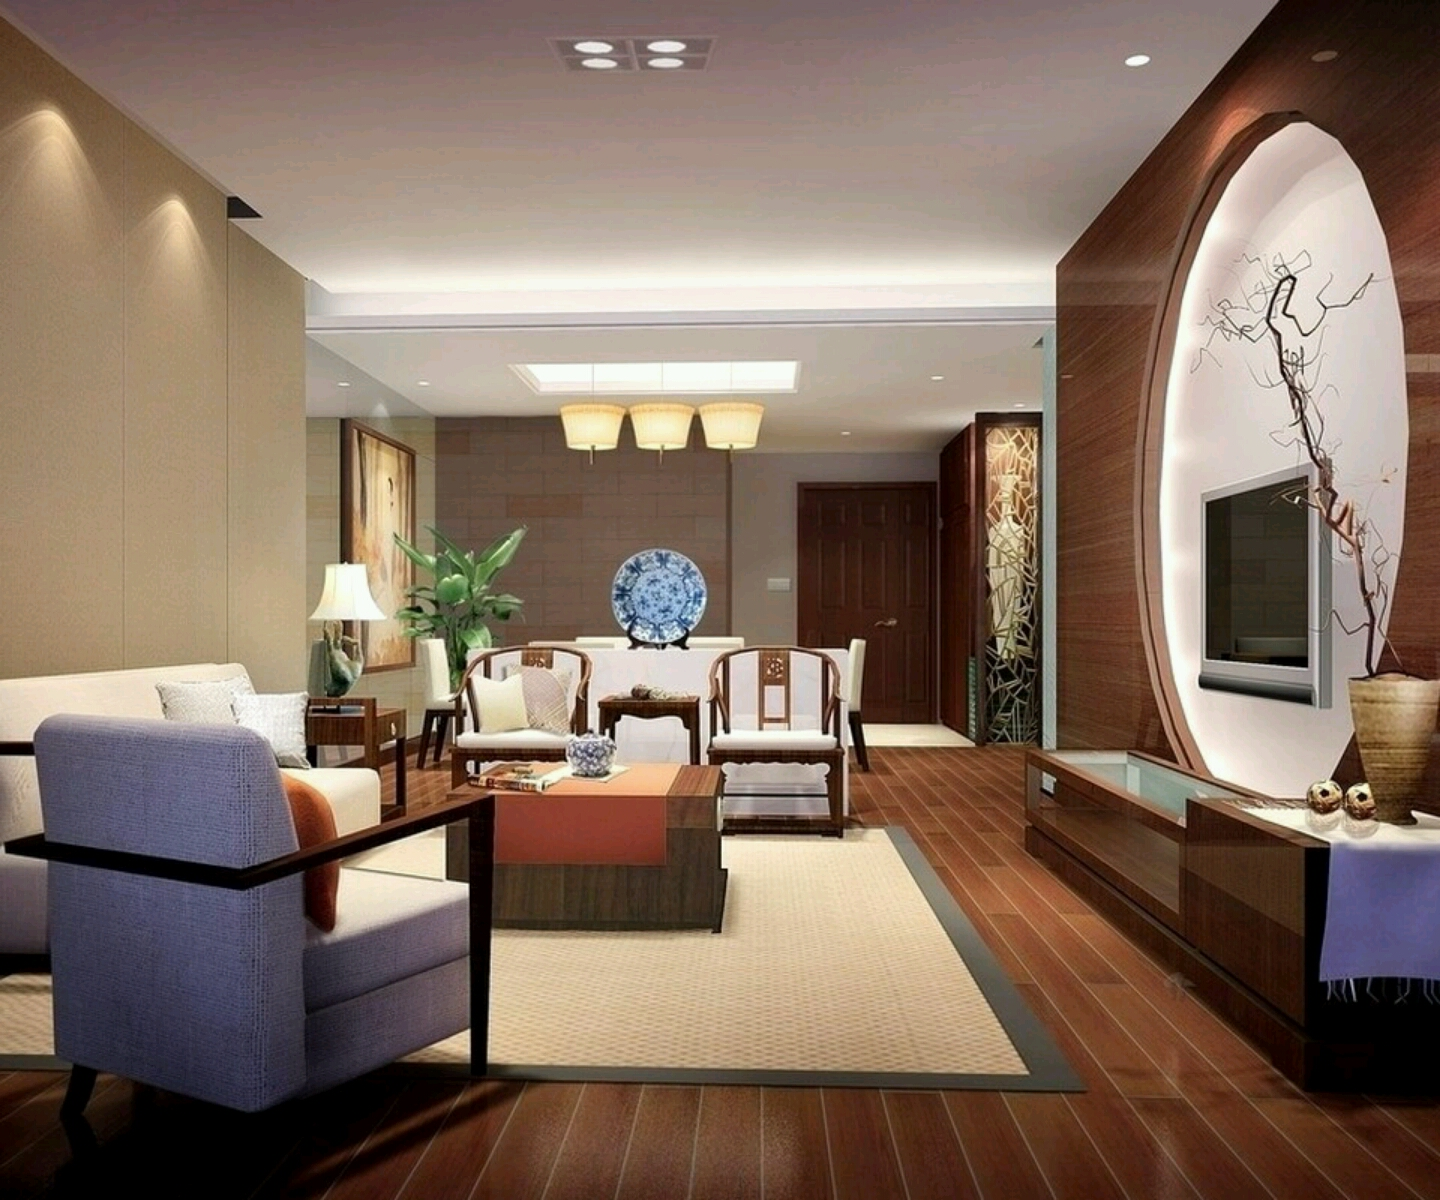 Luxury Homes Interior Decoration Living Room Designs Ideas Home Decorators Catalog Best Ideas of Home Decor and Design [homedecoratorscatalog.us]